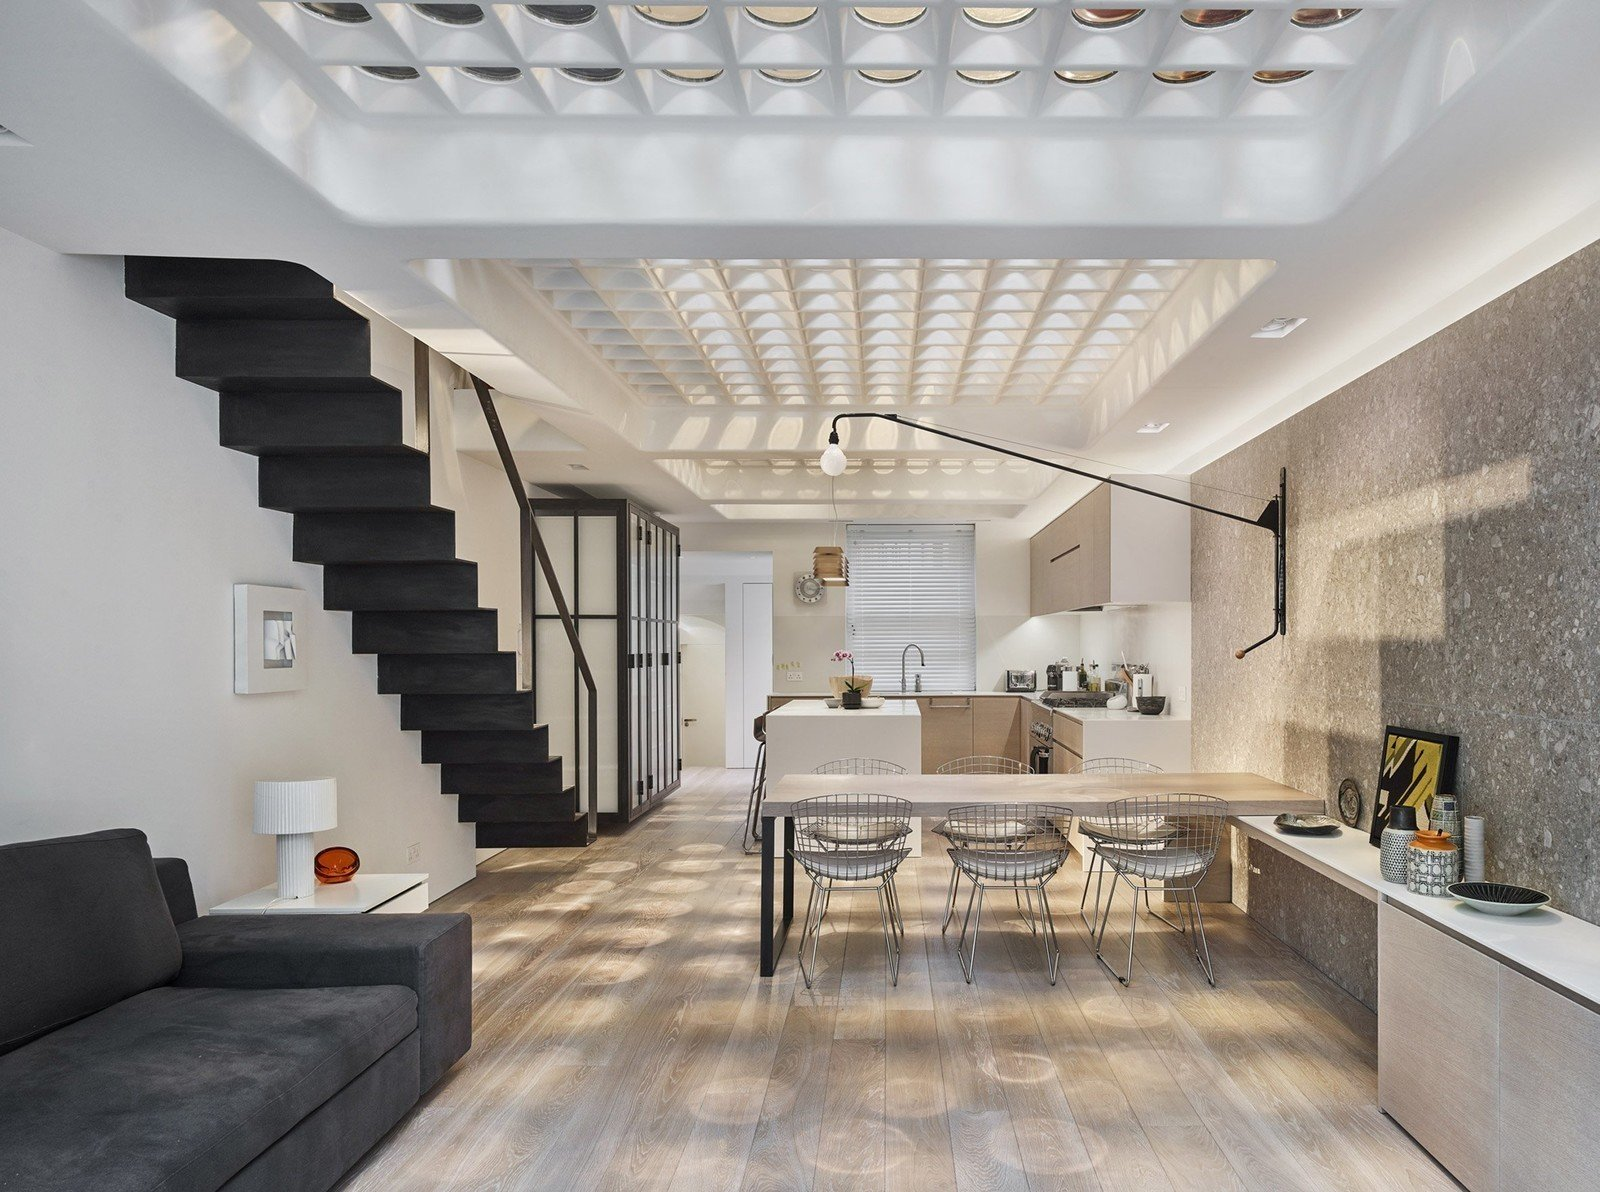 Photo 1 of 12 in Transparent Perforated Circles Bring Light and Movement to This London Terrace House